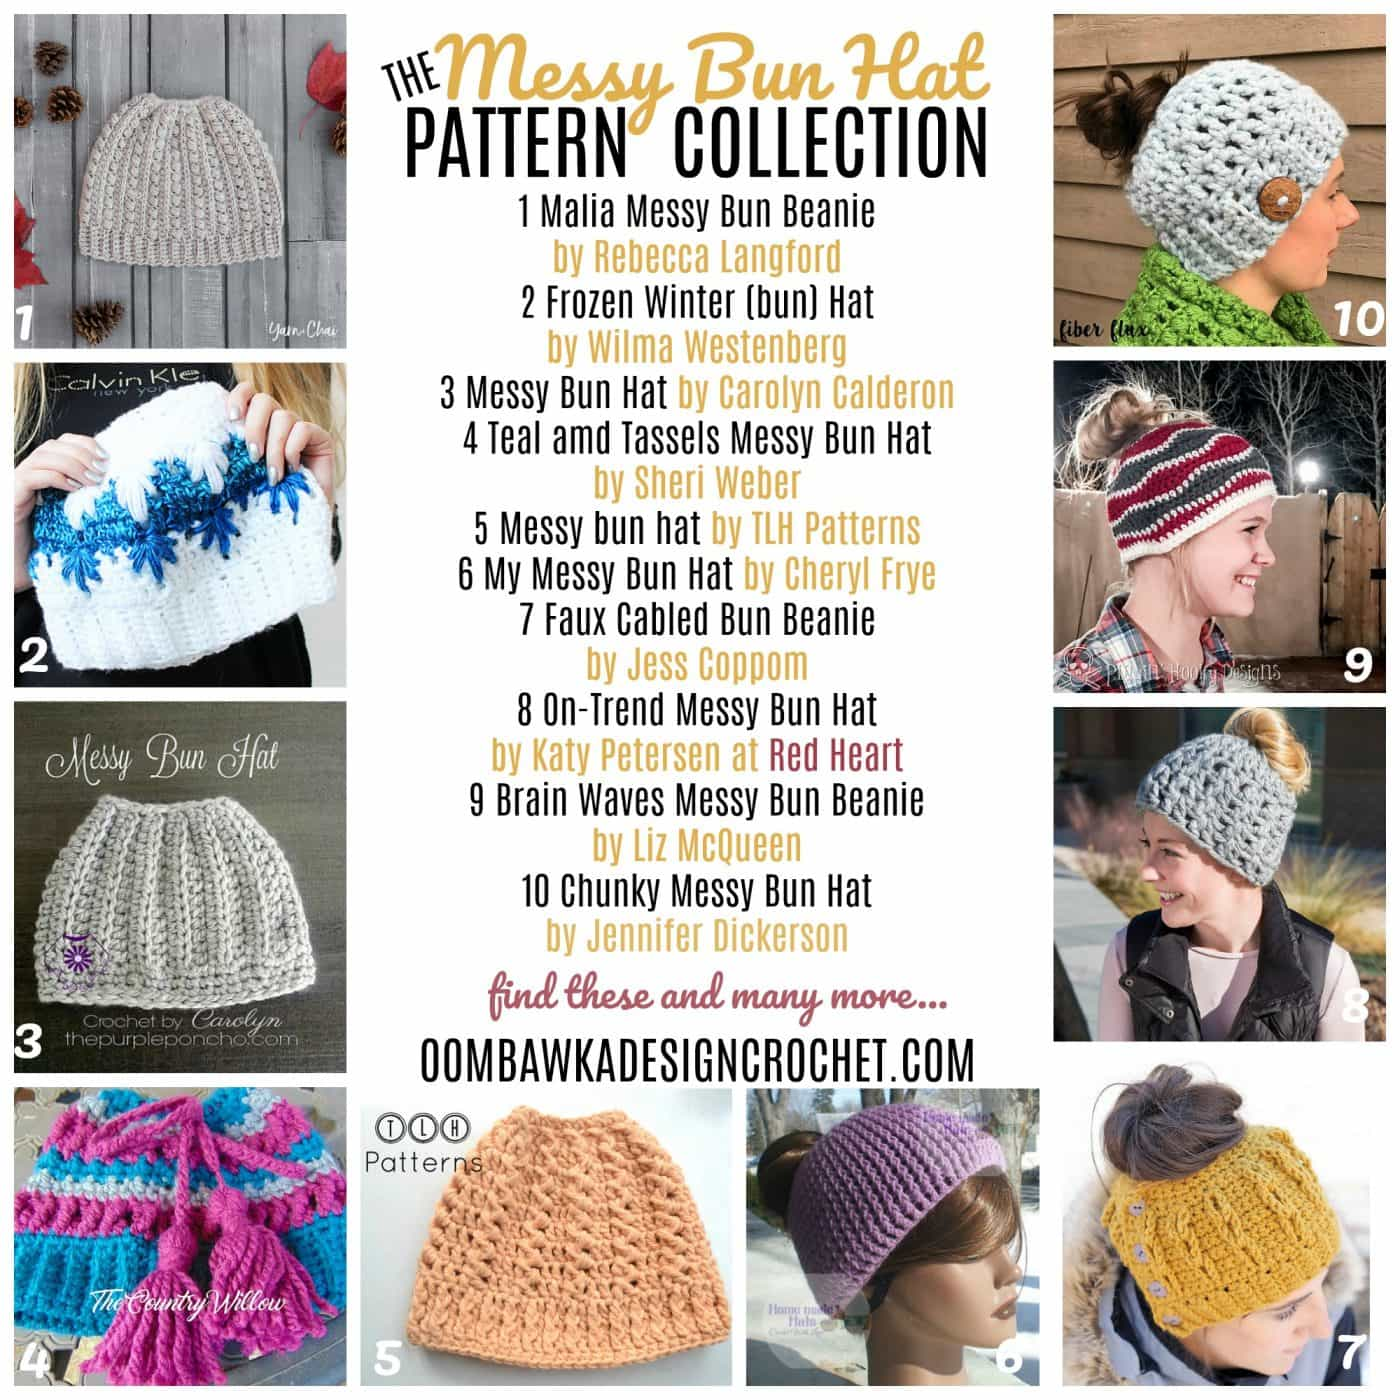 Last year messy bun hats popped up on the crochet scene and became super popular in winter fashion. This year I've already seen people wearing their messy bun hats in Kitchener-Waterloo.In case you have customers asking you to make them messy bun hats - or if you want to make them as gifts for your family and friends I've located a handful of new patterns designed along this winter theme.